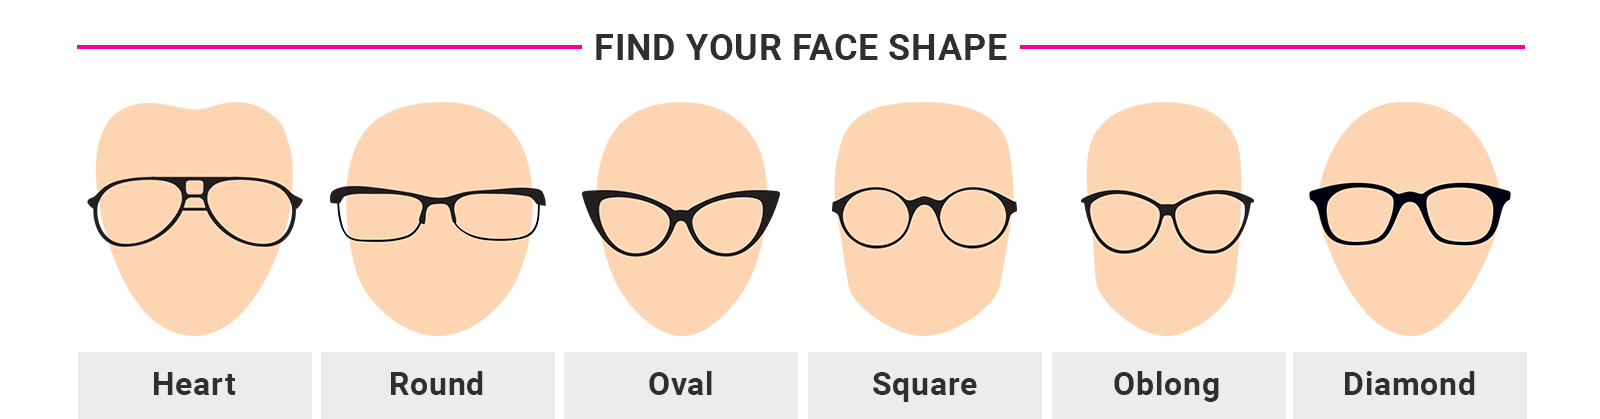 Find your face shape image which have 6 type of faces